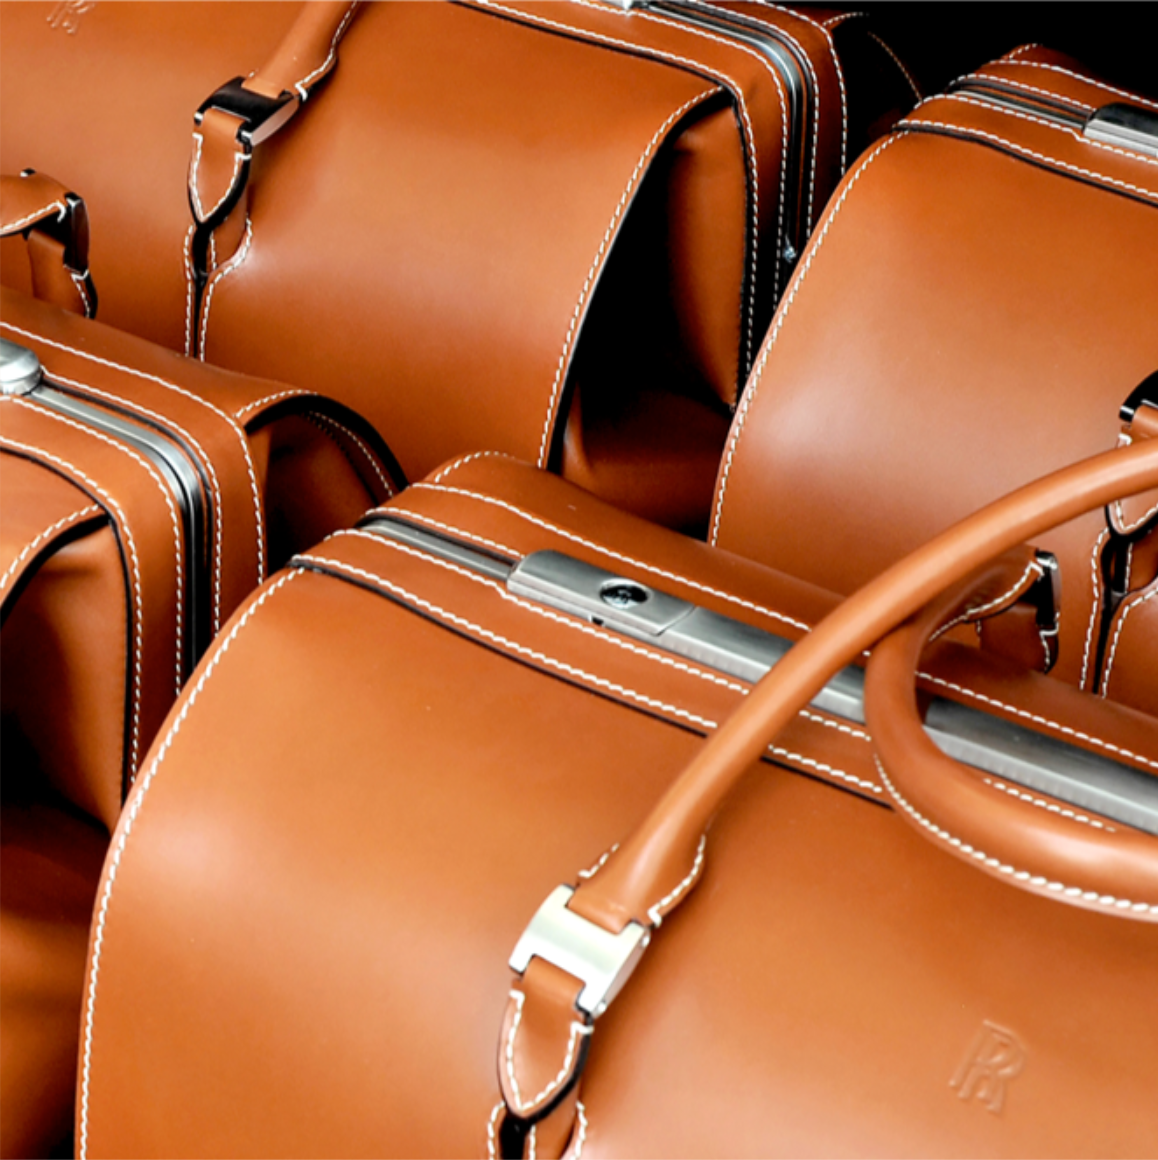 A shot showing the Rolls-Royce Phantom Luggage Collection made from the finest full-grain saddle leather